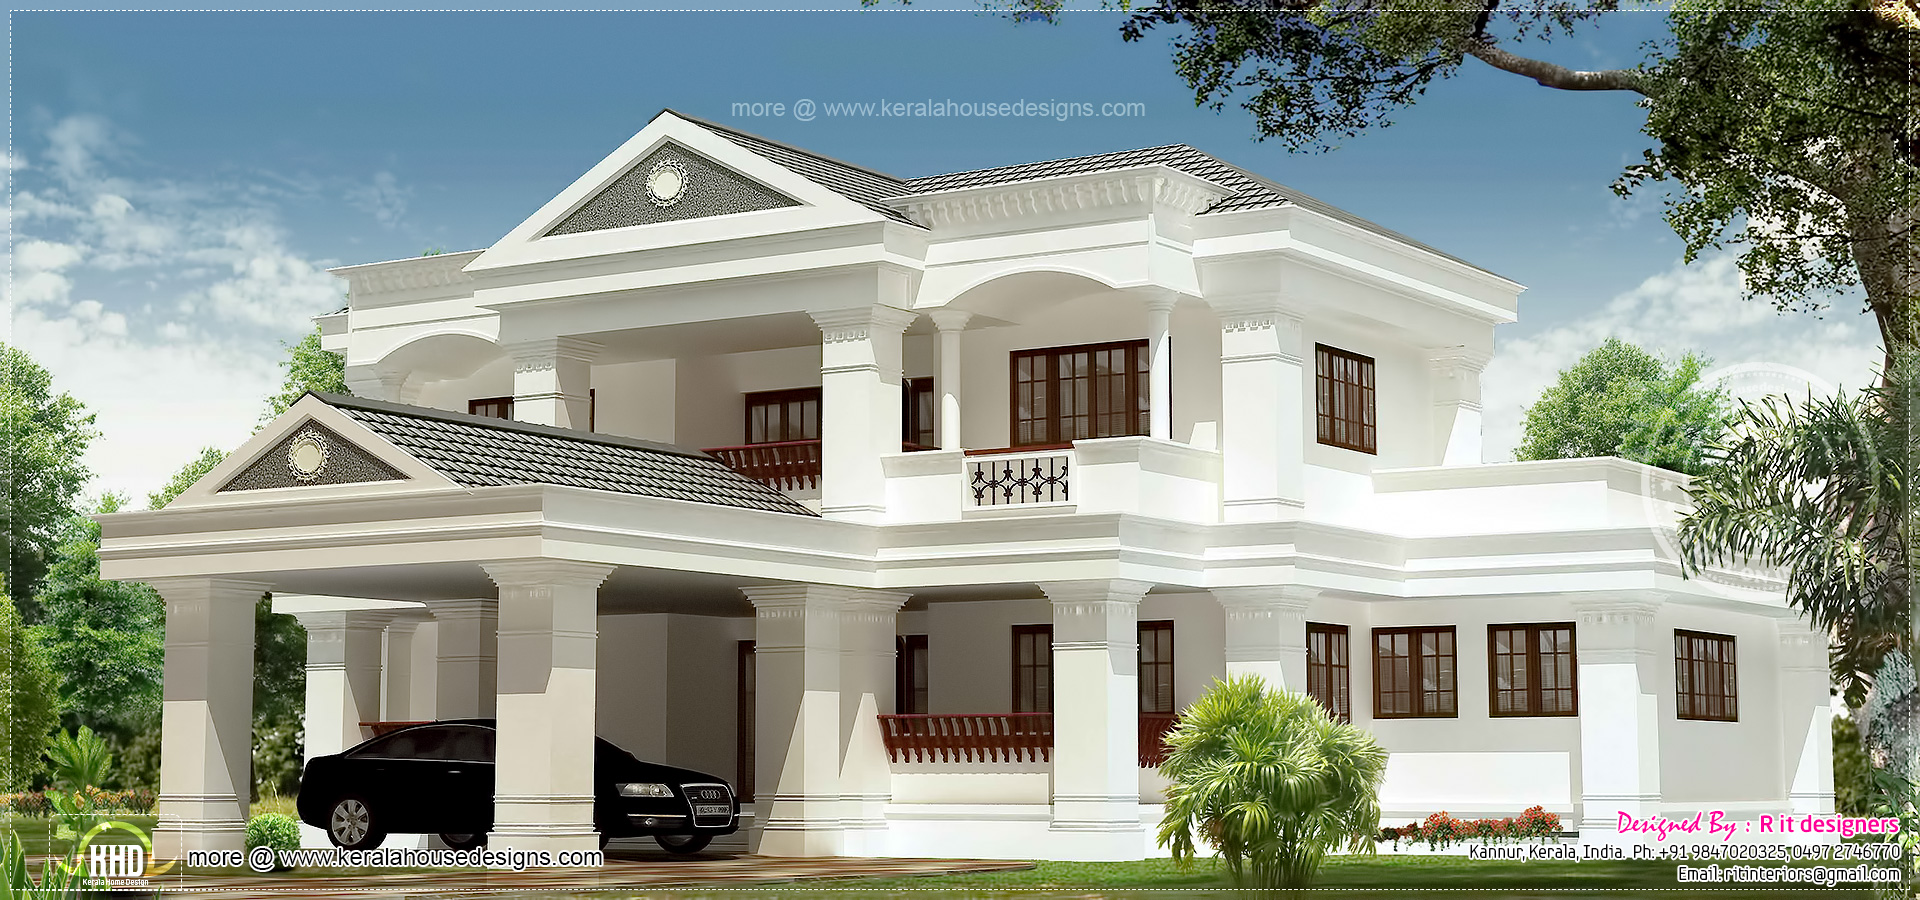 Victorian Home Plans » Luxury Sq Ft Home Plans Under